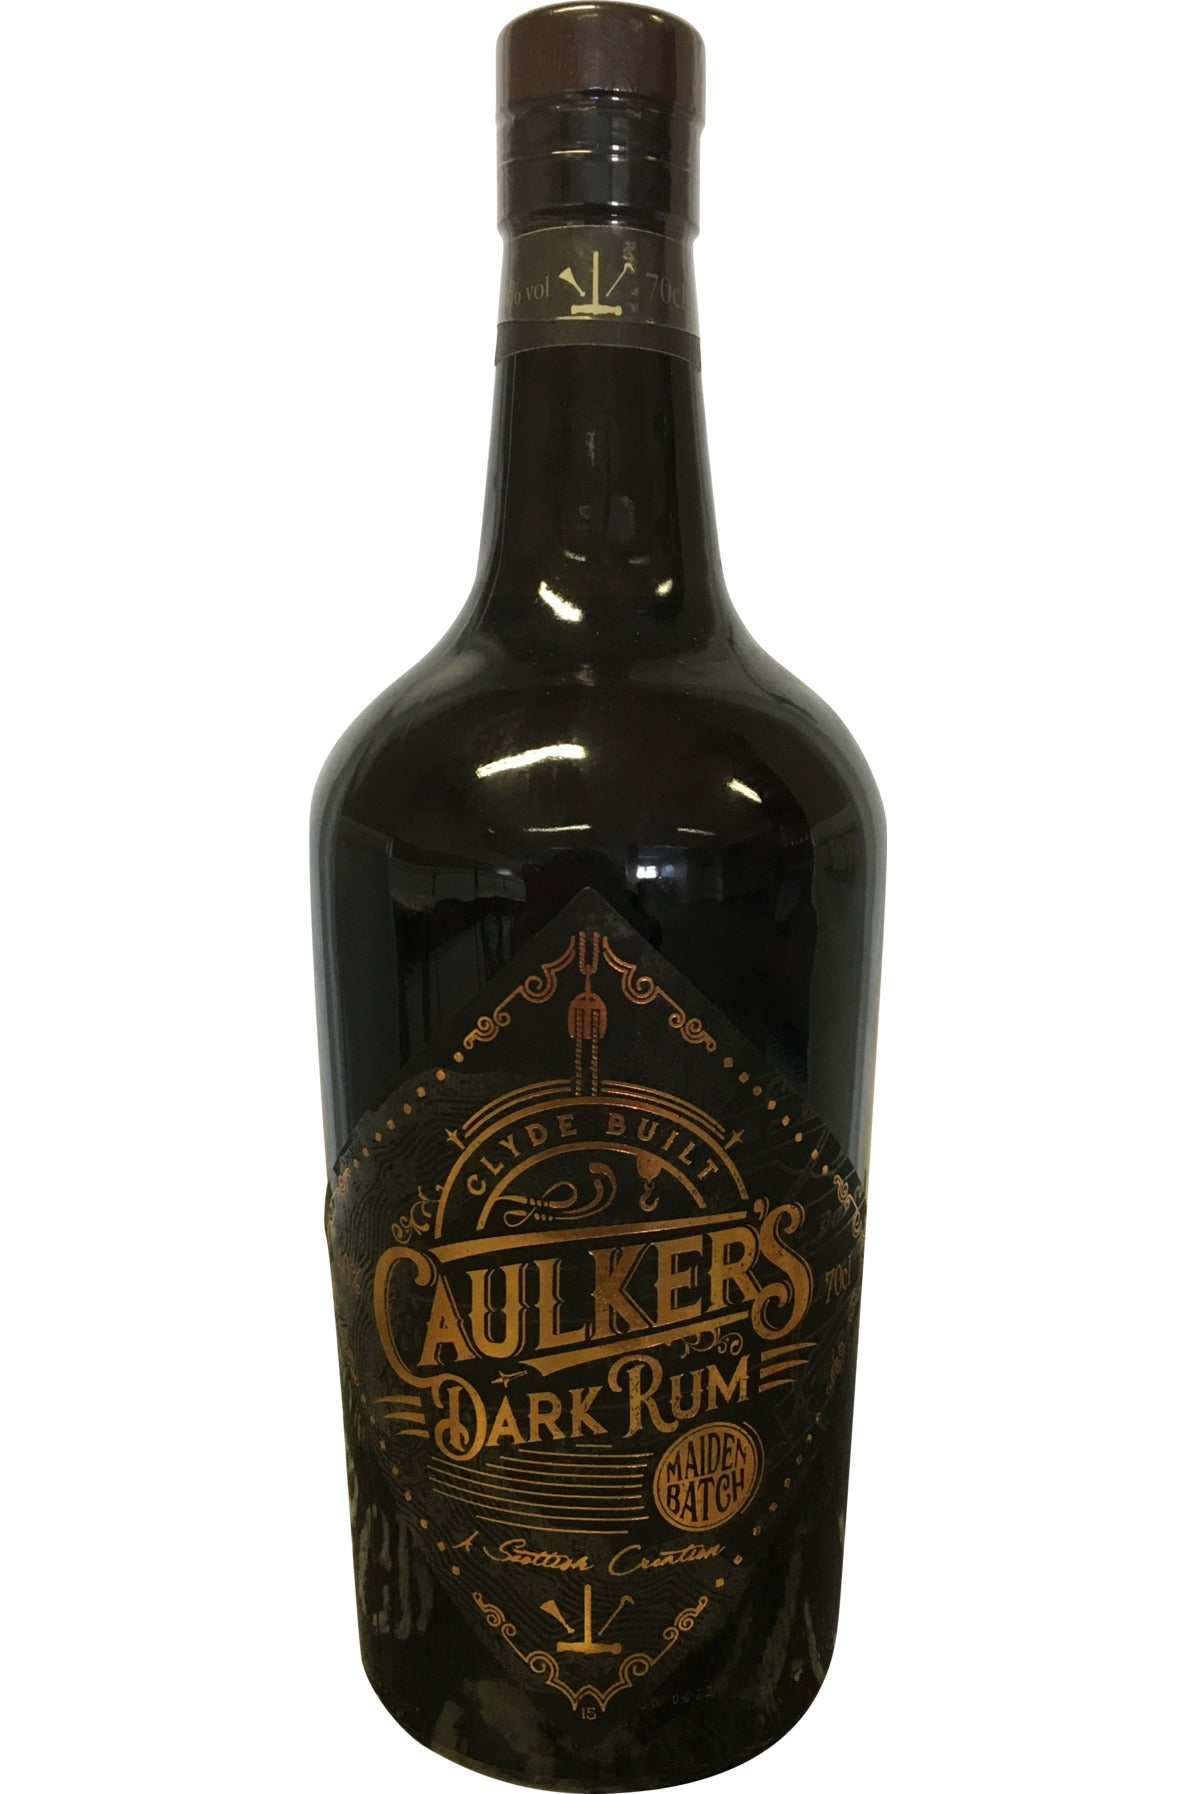 Caulkers Dark Rum Maiden Batch - 40% 700ml